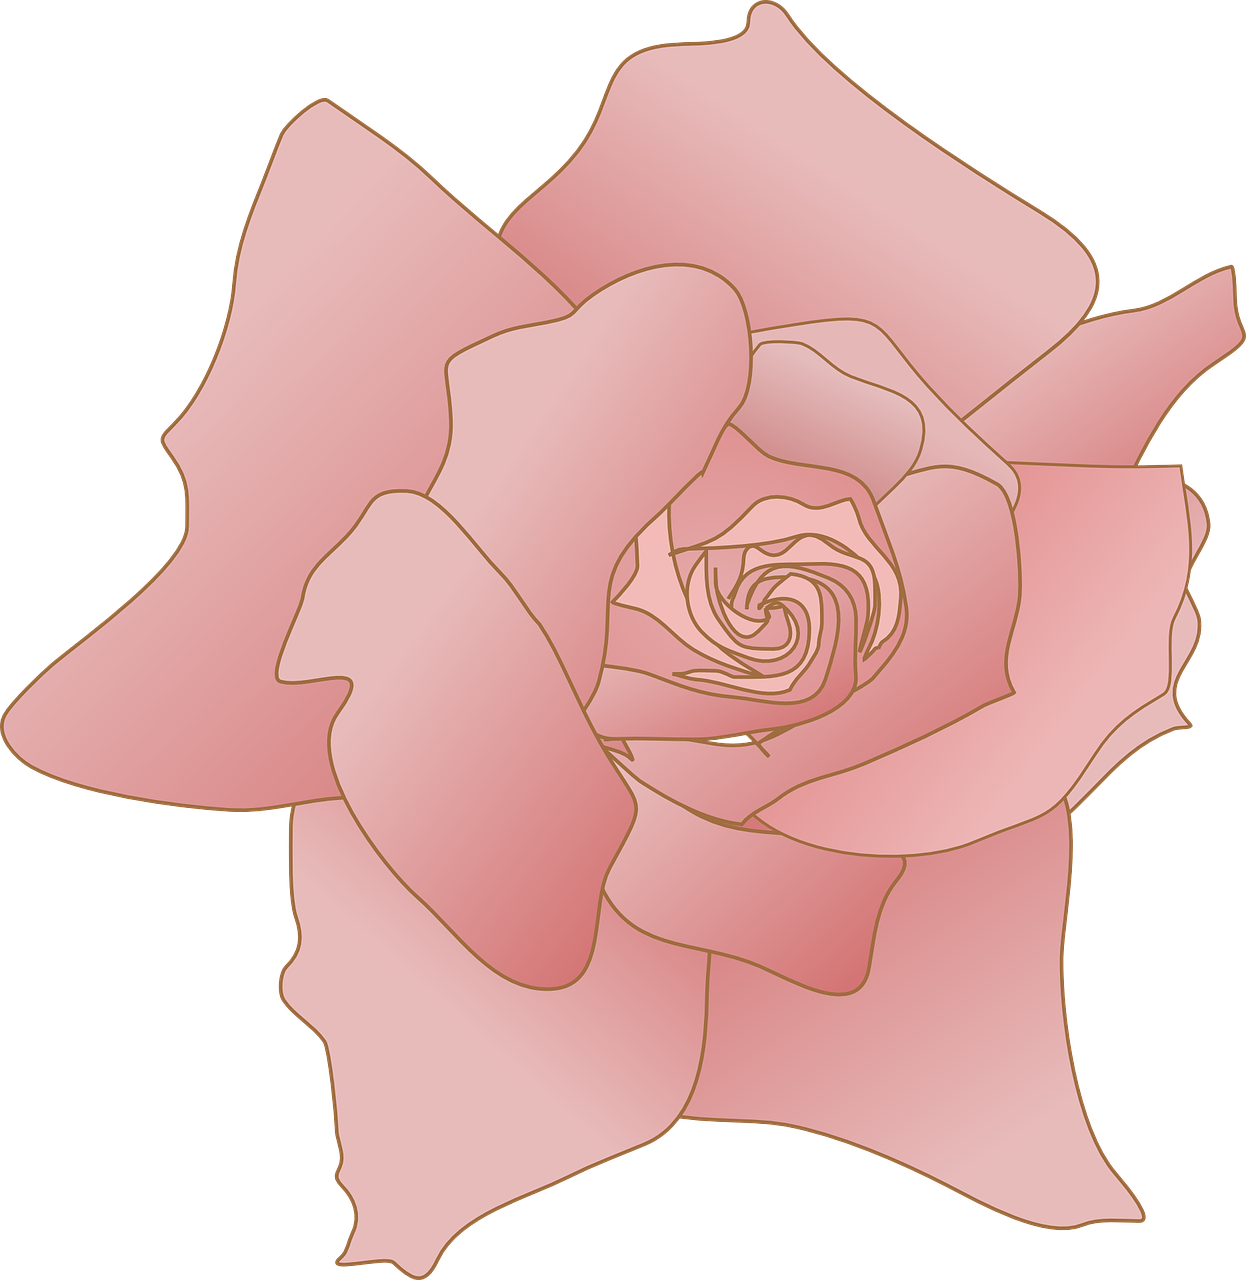 how to draw a rose 2